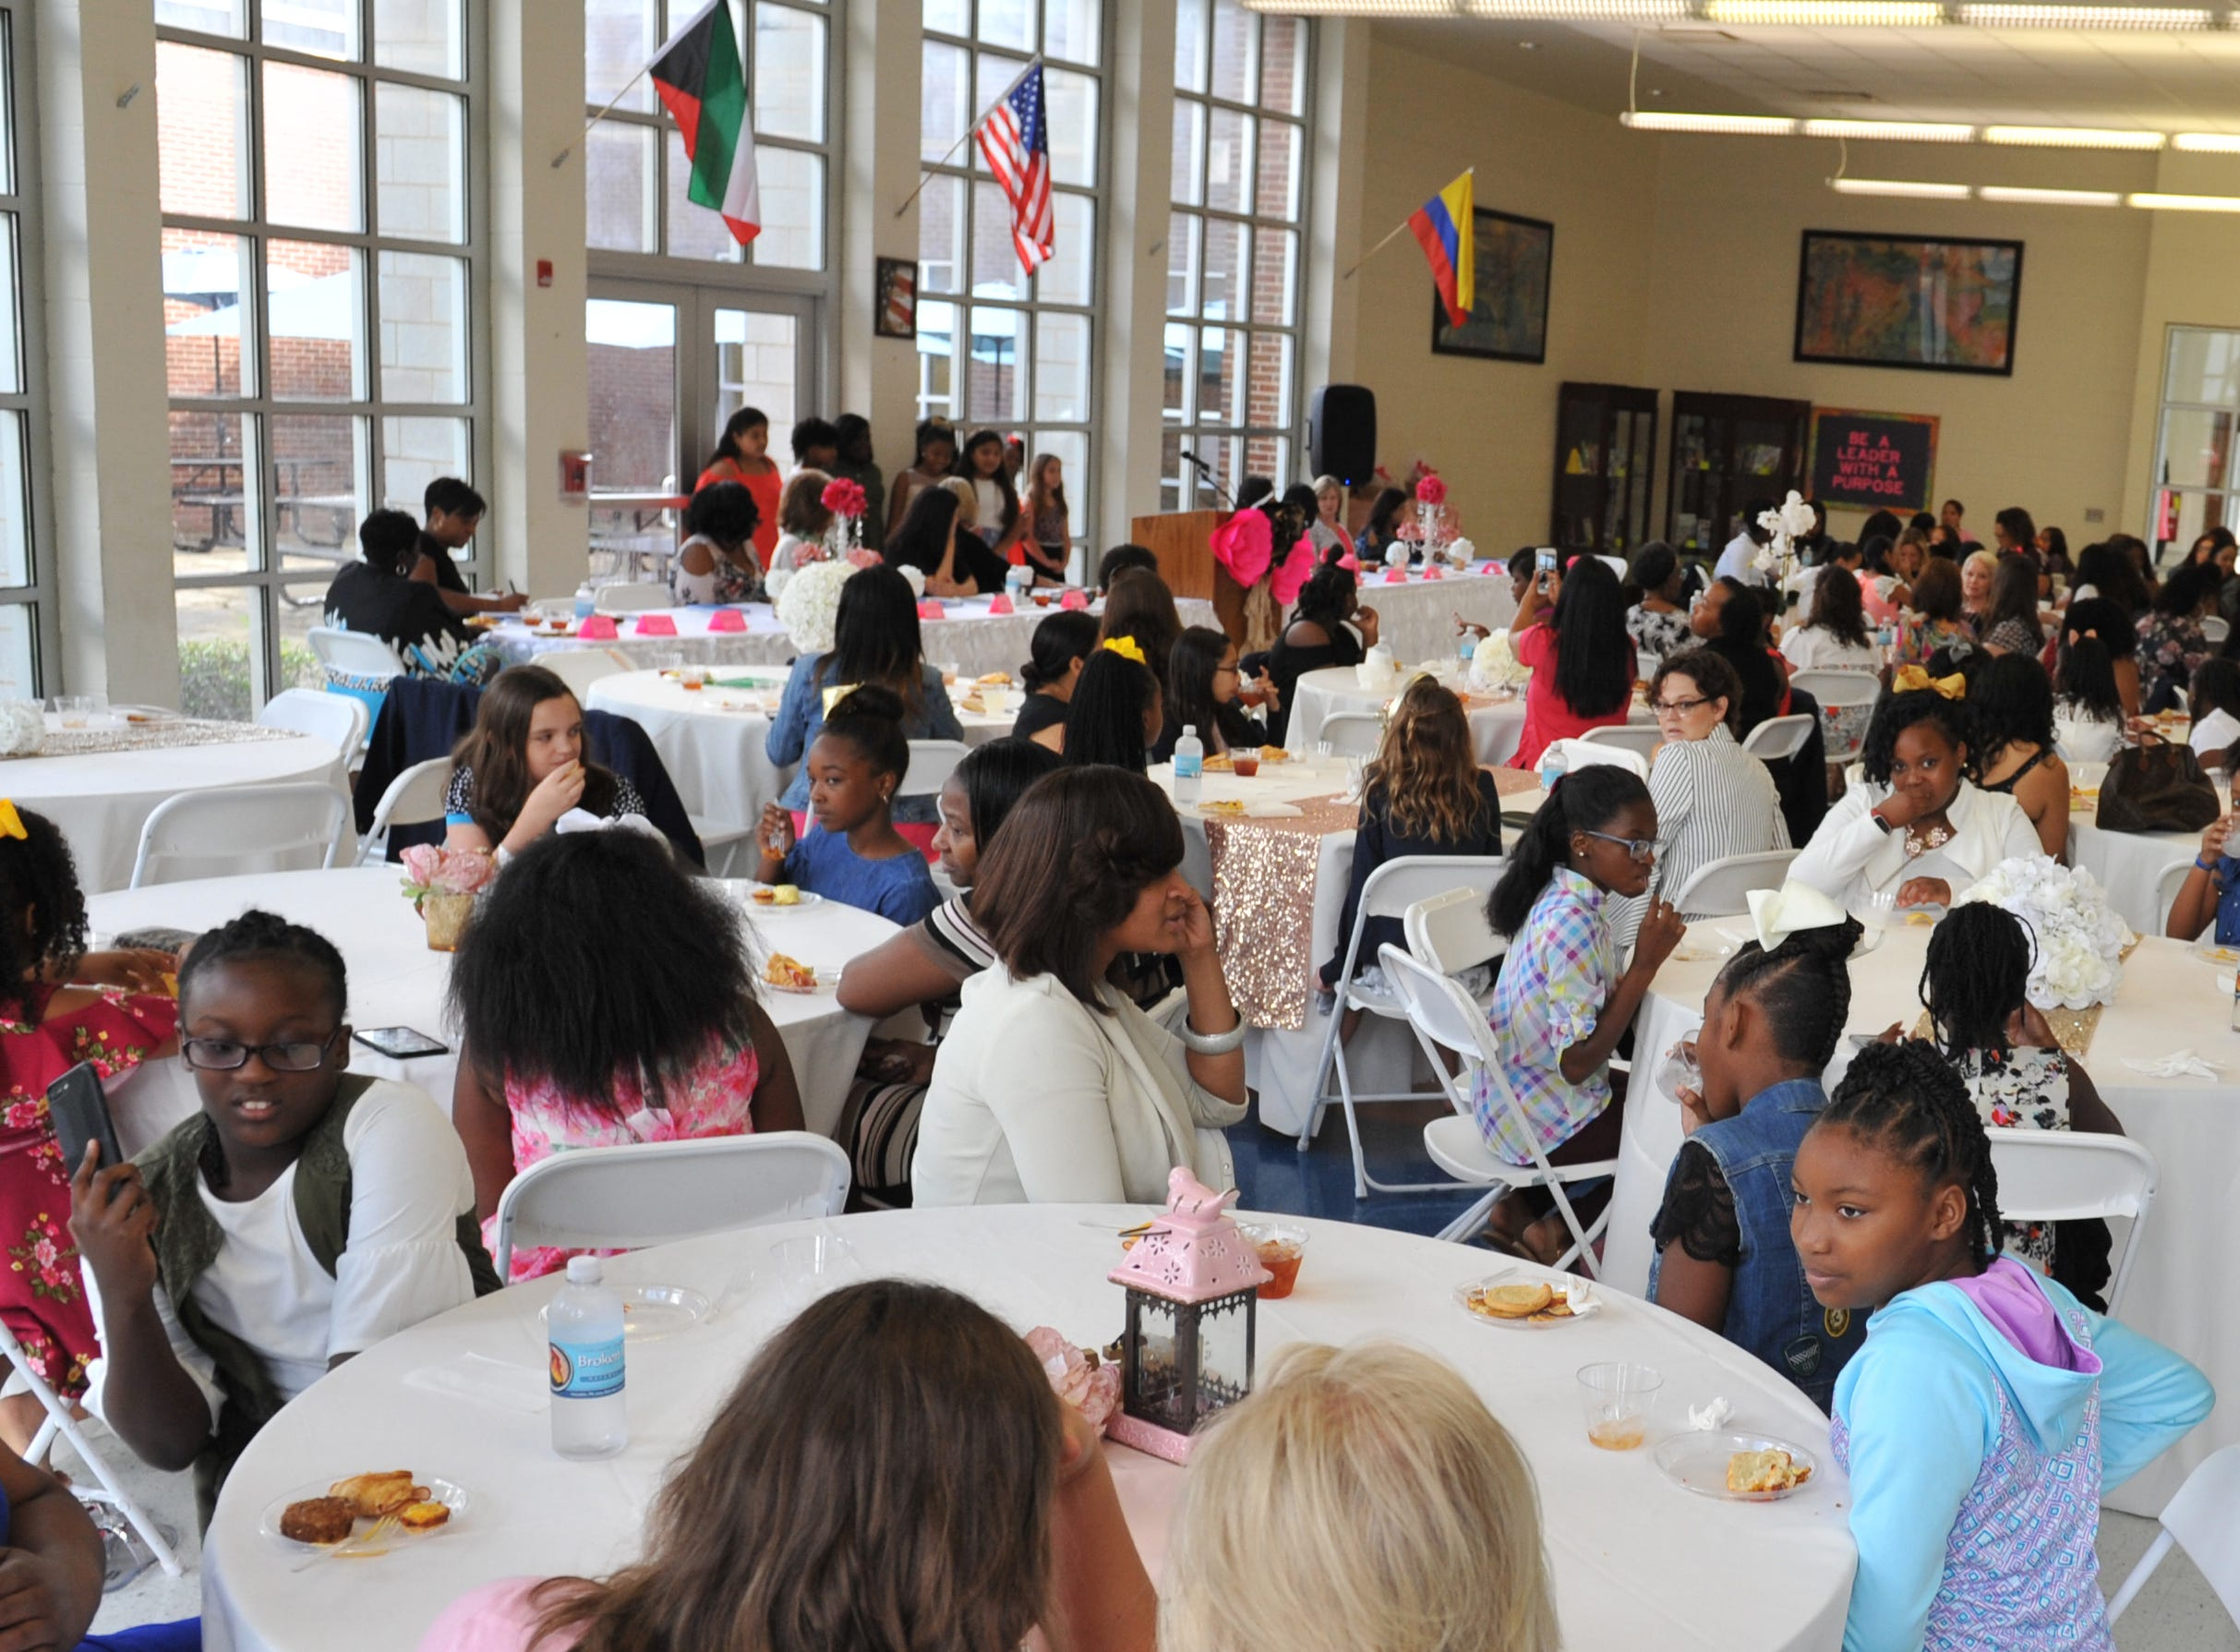 There was a crowd for the Girls with Purpose Club Mother-Daughter Tea at Highland Elementary School in Ridgeland featuring Deborah Bryant and her daughter Katie Bryant Snell on Friday, Sept. 21..